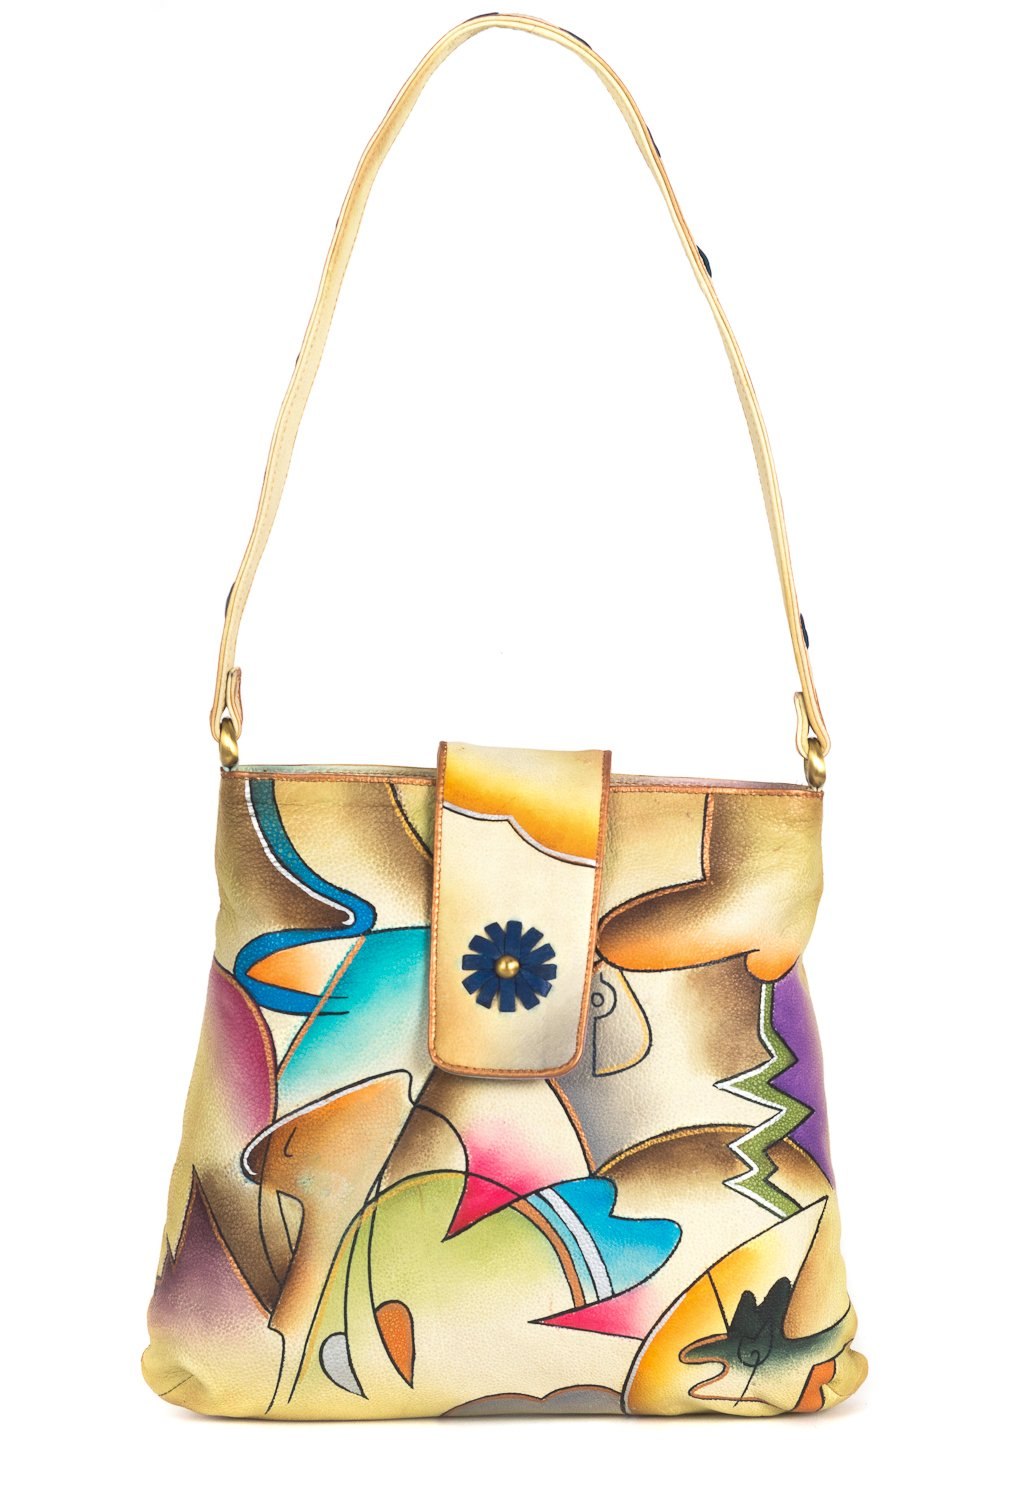 ZIMBELMANN NELLY Genuine Nappa Leather Hand-painted Hobo Shoulder Bag Purse by Zimbelmann